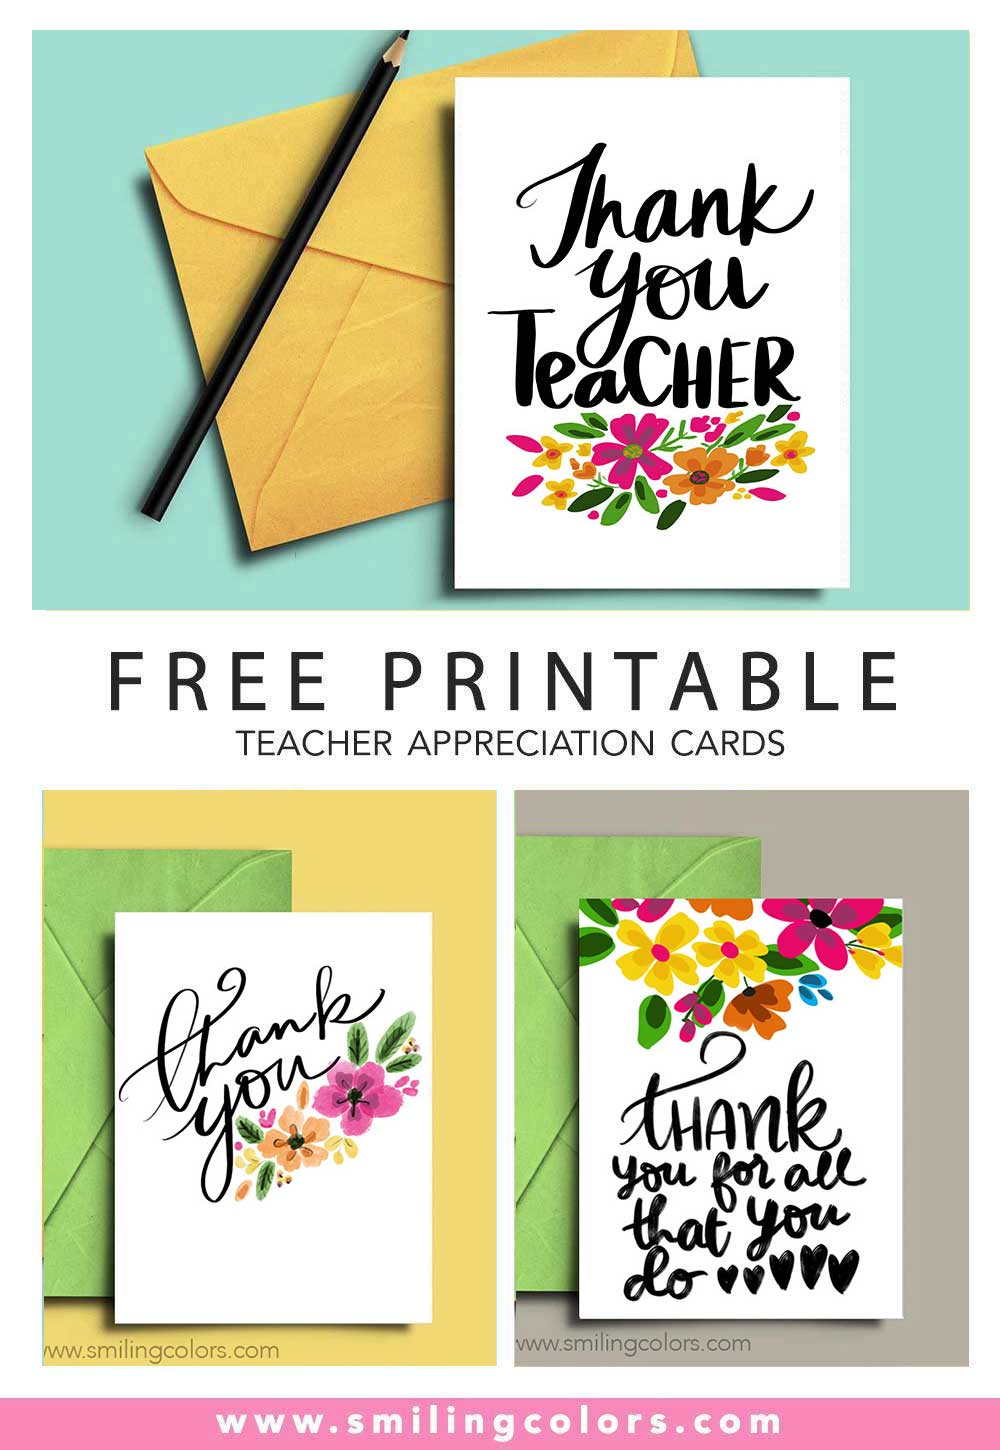 graphic regarding Free Printable Teacher Appreciation Cards to Color referred to as Thank your self instructor: A fastened of Totally free printable observe playing cards